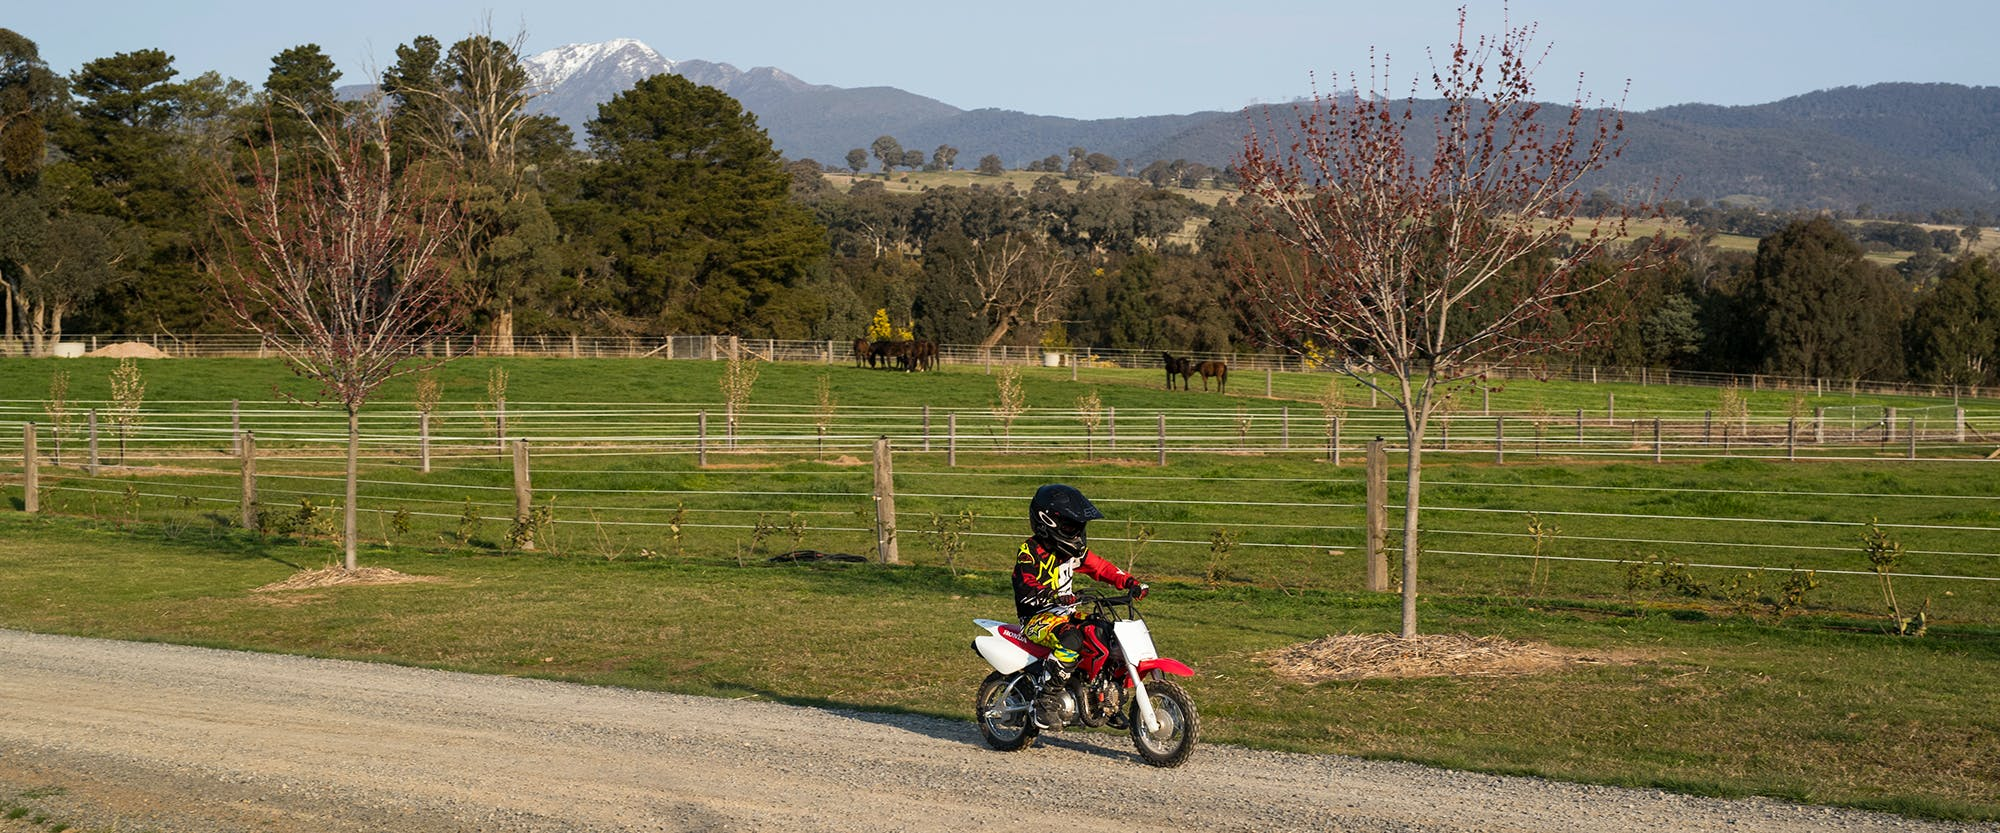 Honda CRF50F in extreme red colour being ridden on off road track